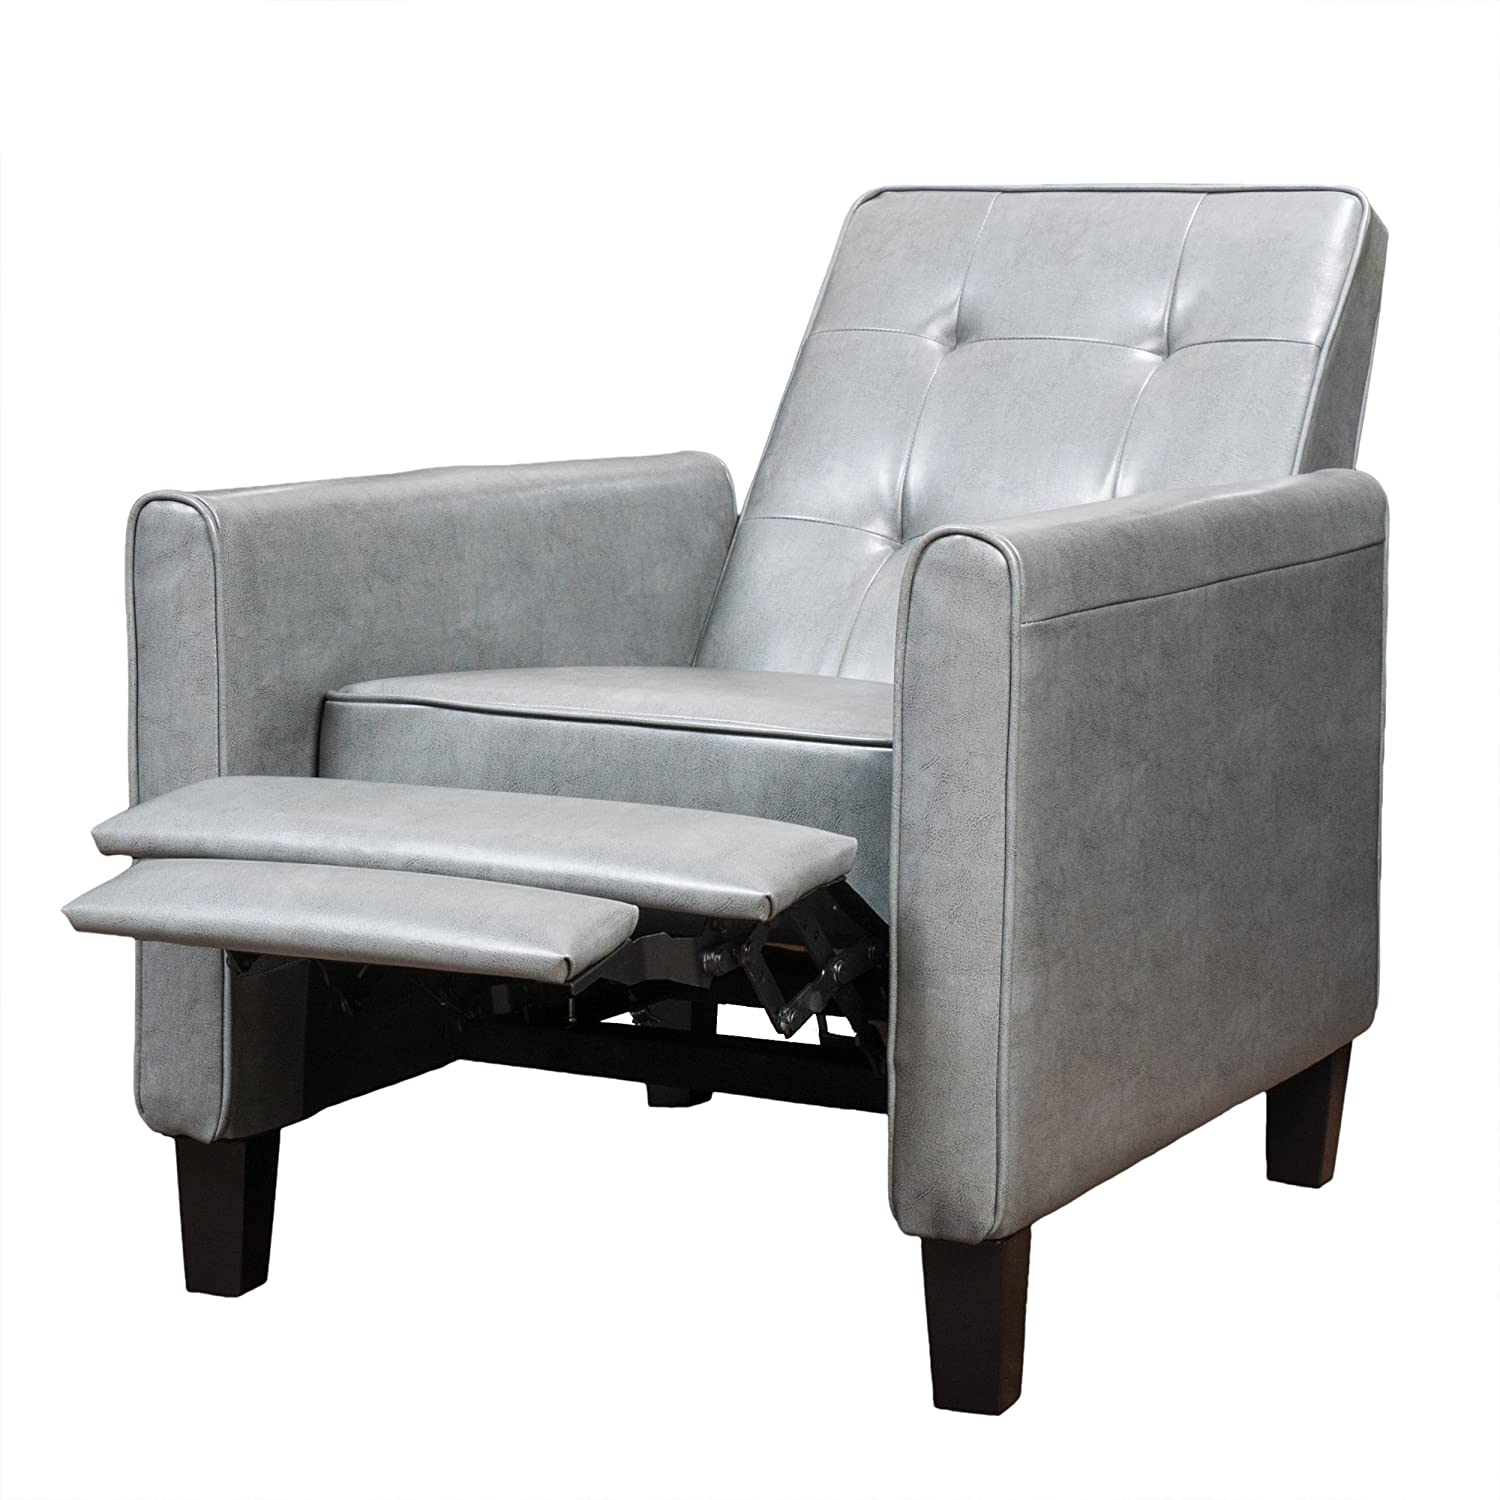 Amazon.com: Denise Austin Home Elan Tufted Bonded Leather Recliner Chair:  Kitchen U0026 Dining